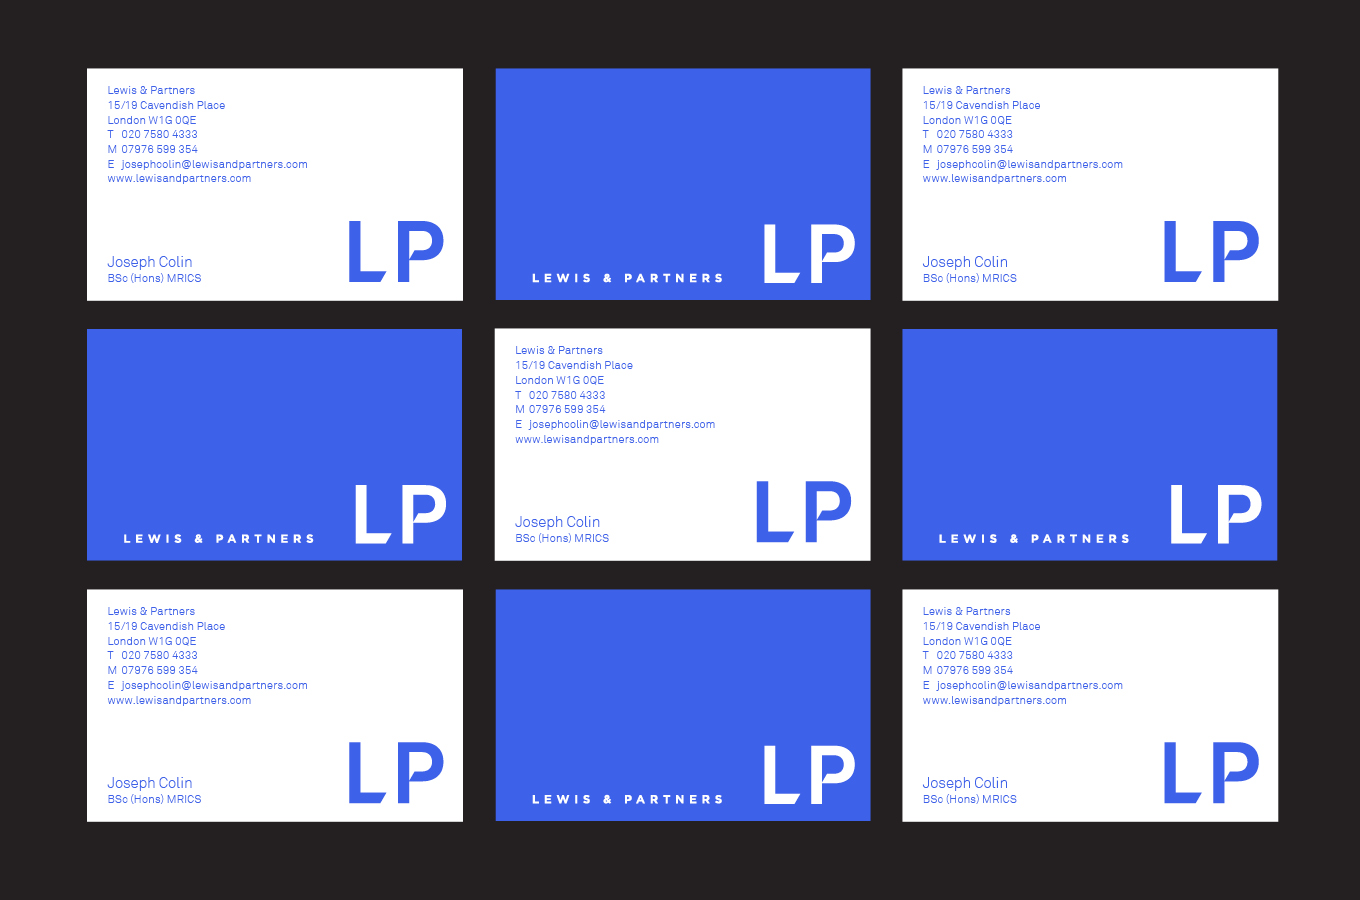 Lewis & Partners business cards